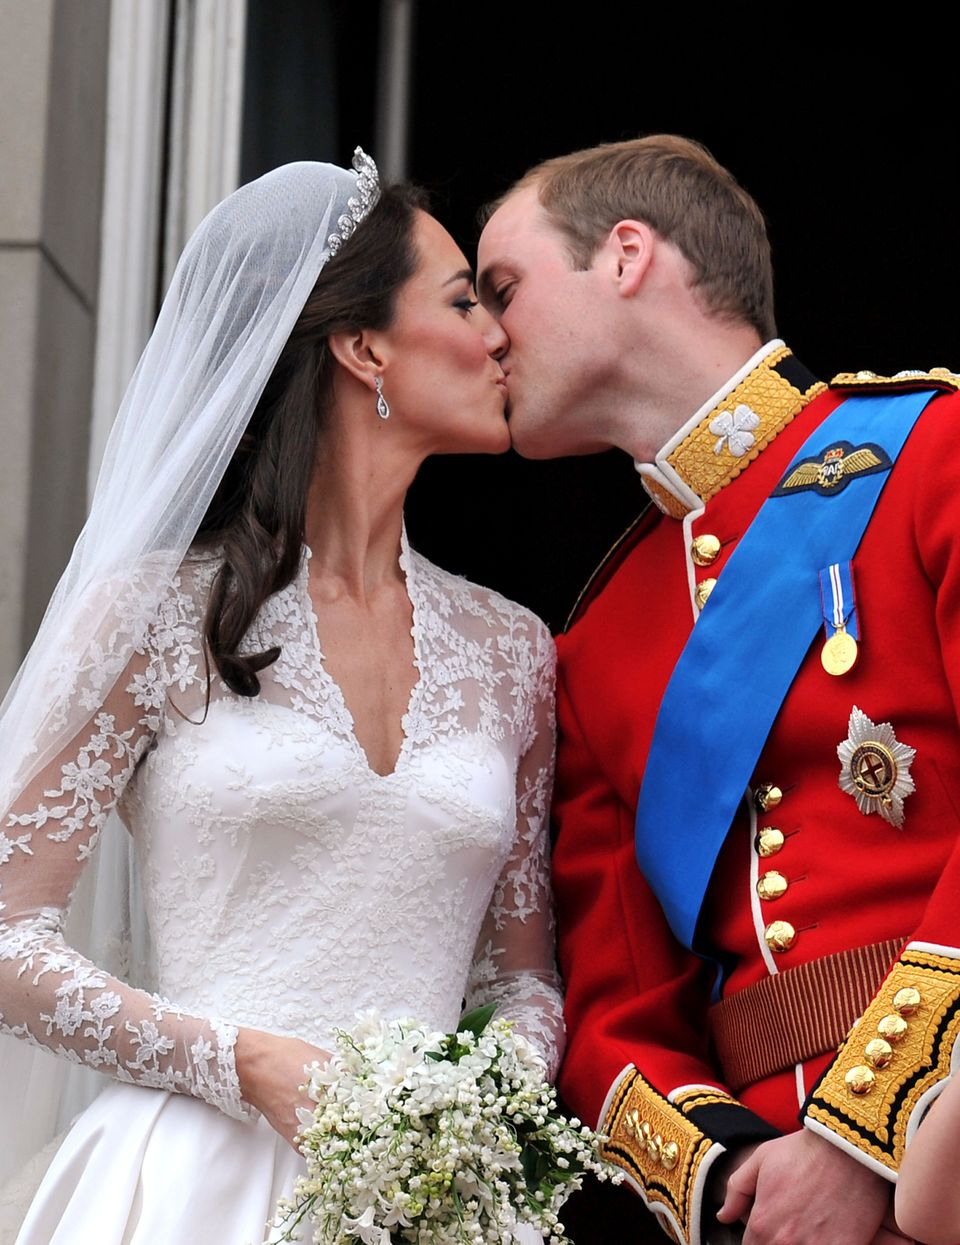 The pressureleading up to William and Kate's huge wedding would have been 'massive', says royal...